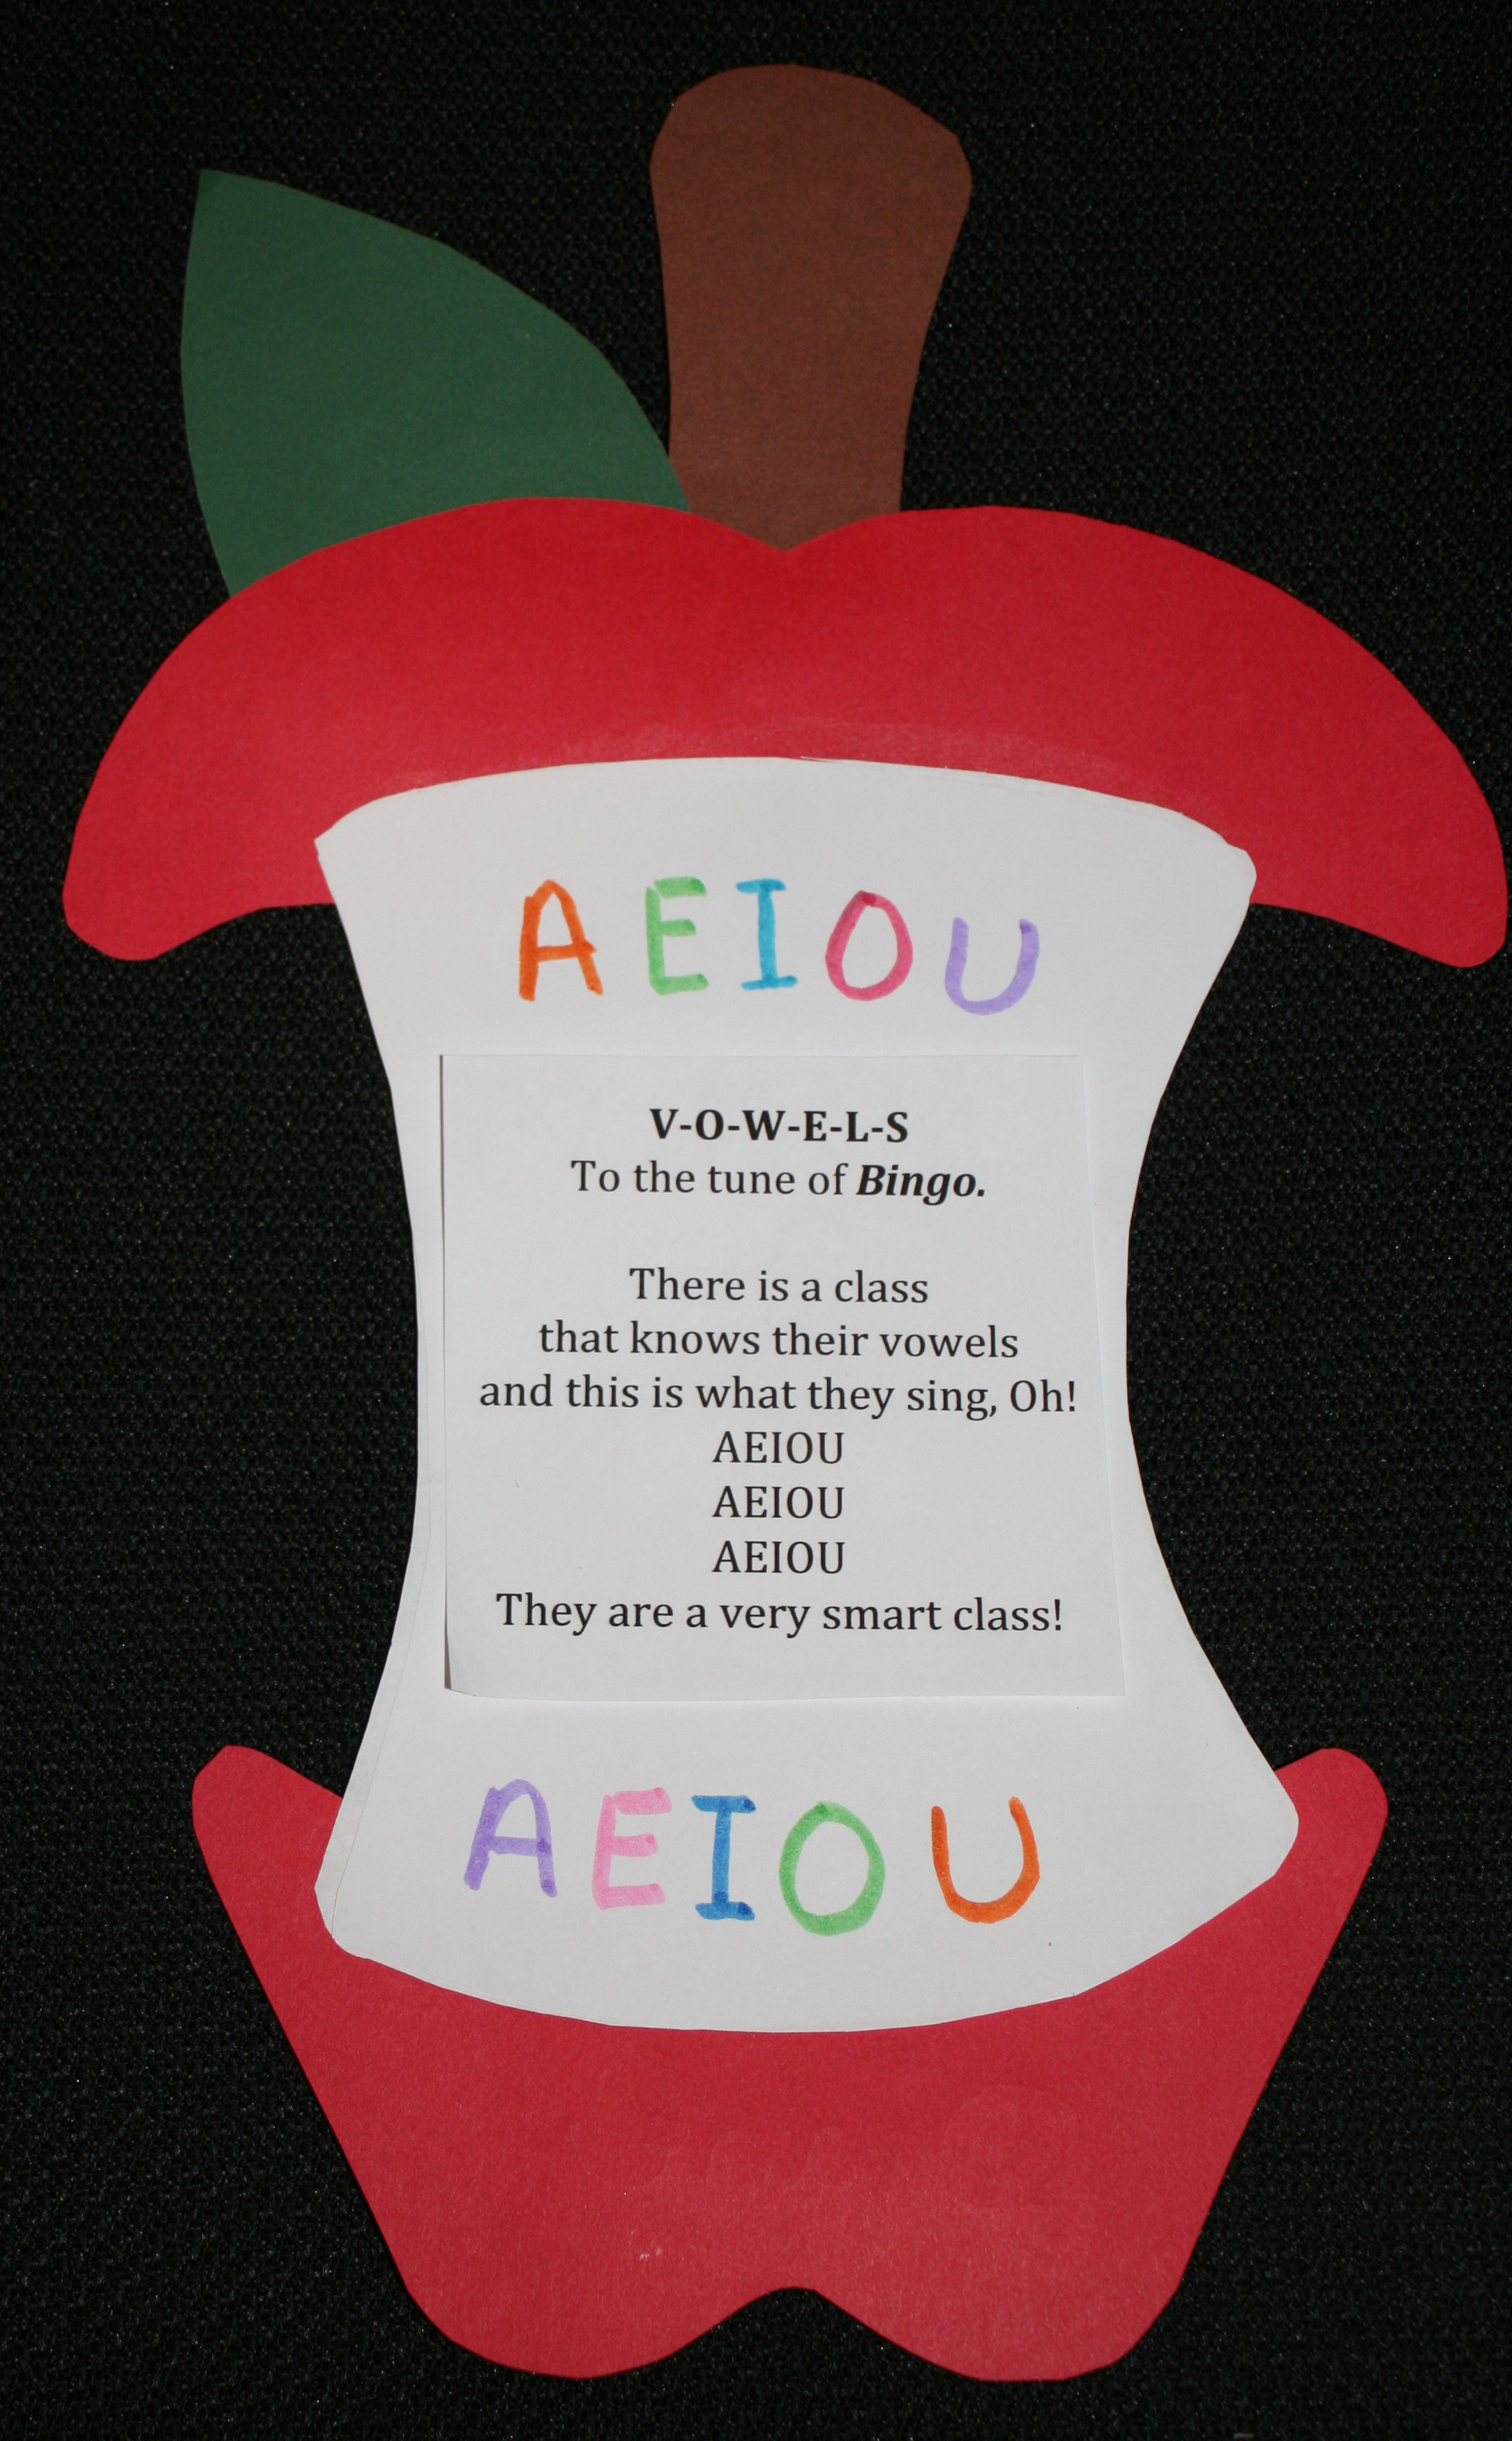 apple art projects, ideas for teaching vowels, back to school ideas, ideas for the first day of school, chicka boom ideas, back to school bulletin boards,